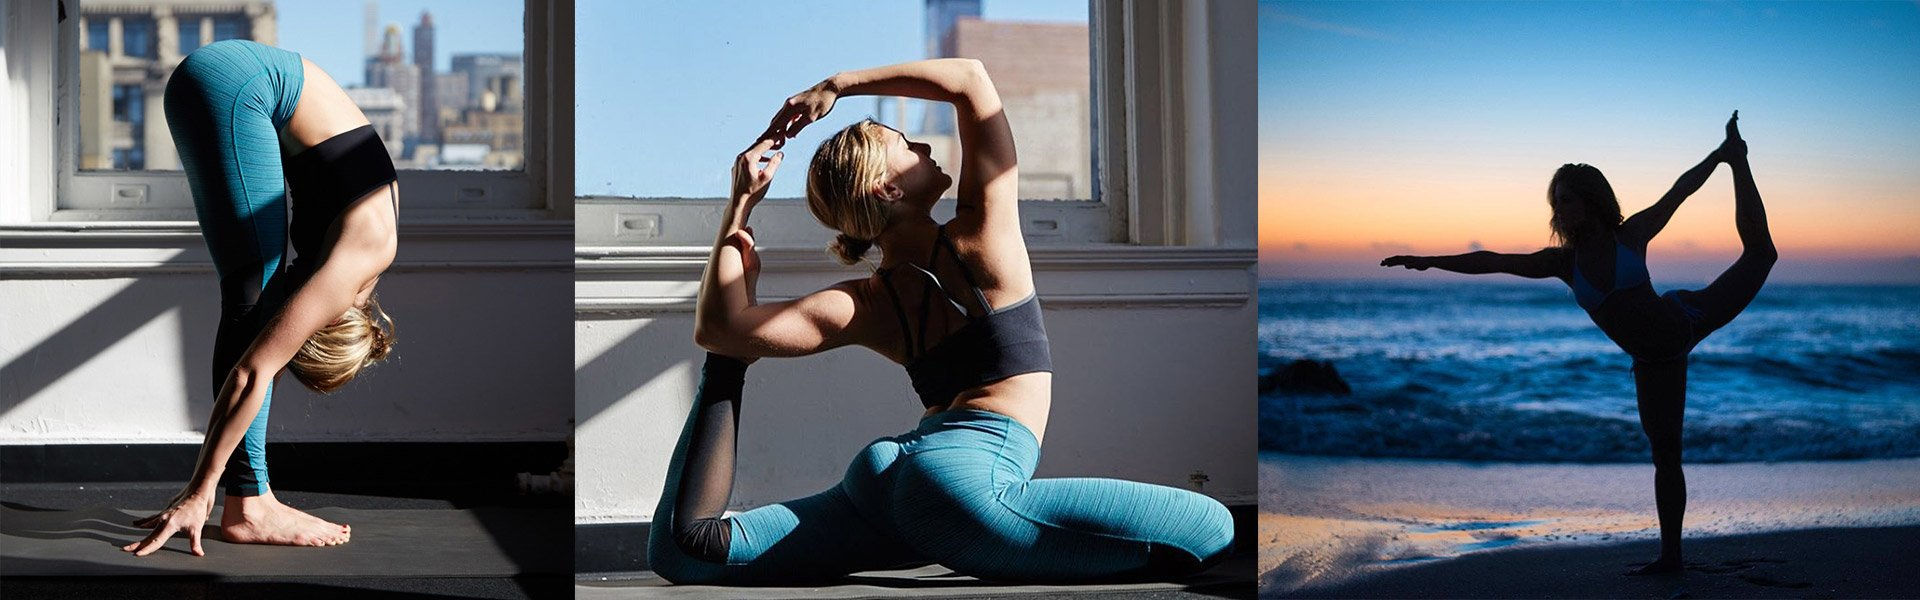 What are the yoga exercises to be done regularly for fitness? 5